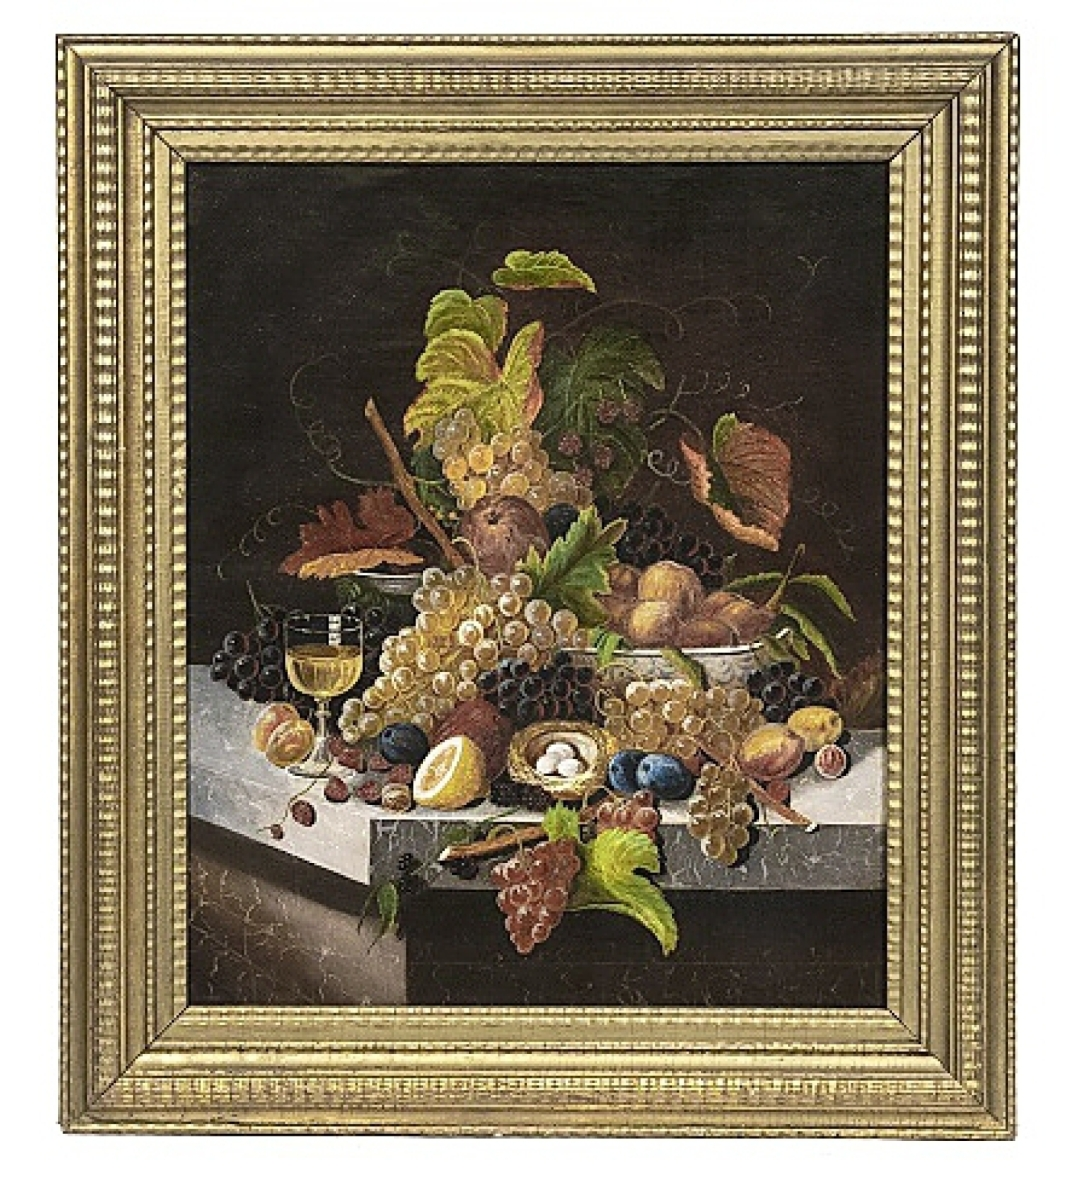 Fetching $28,080 was this oil on canvas still life painting by Severin Roesen.